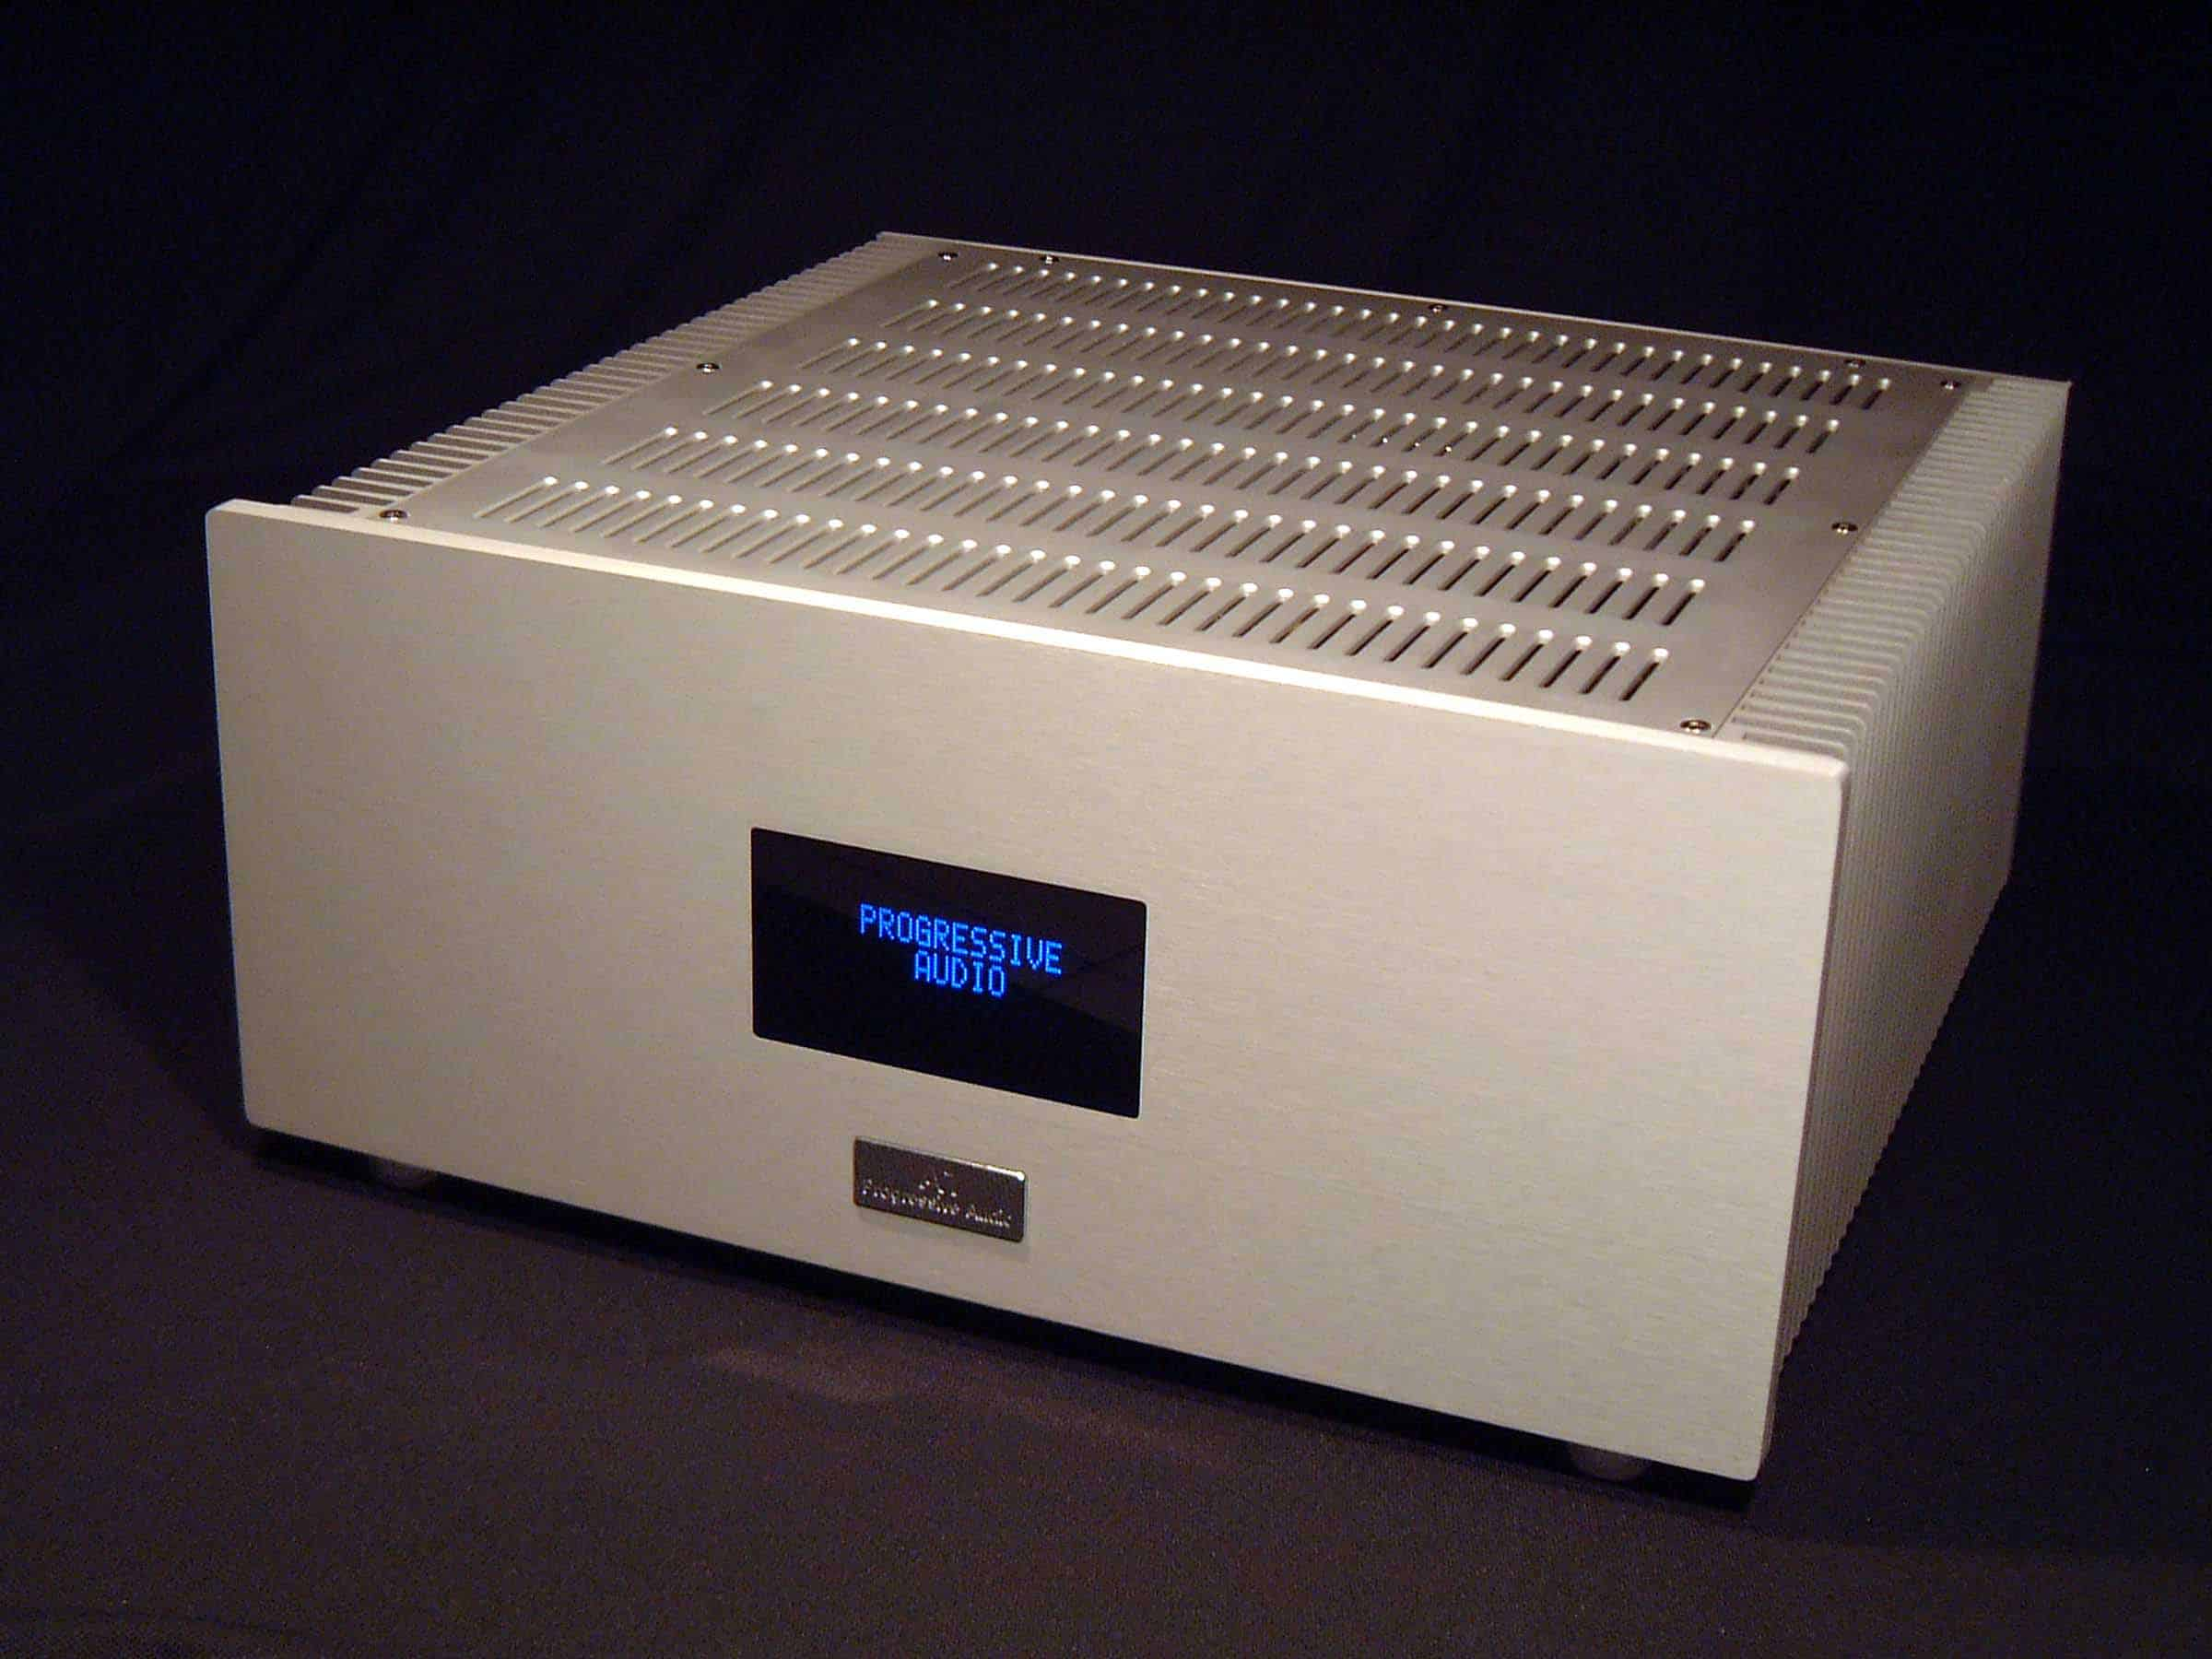 Progressive Audio A1